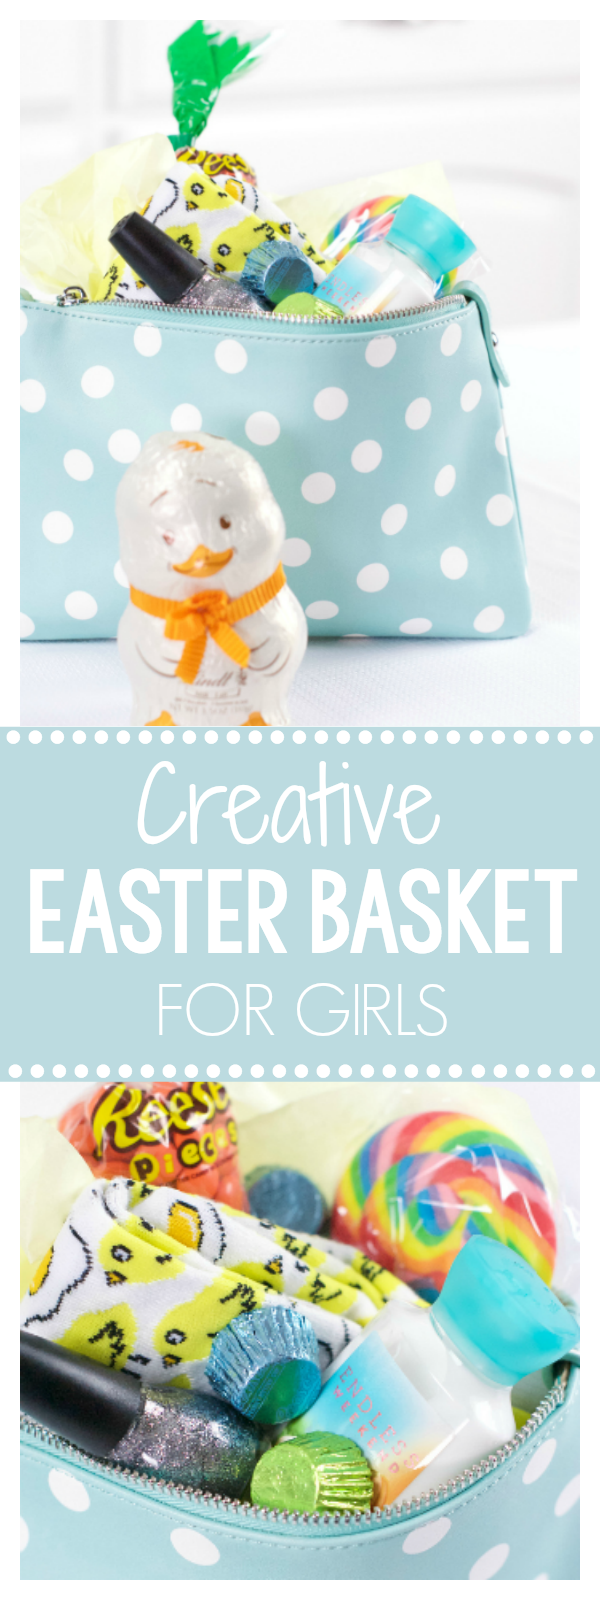 Creative Easter Basket Ideas for Girls